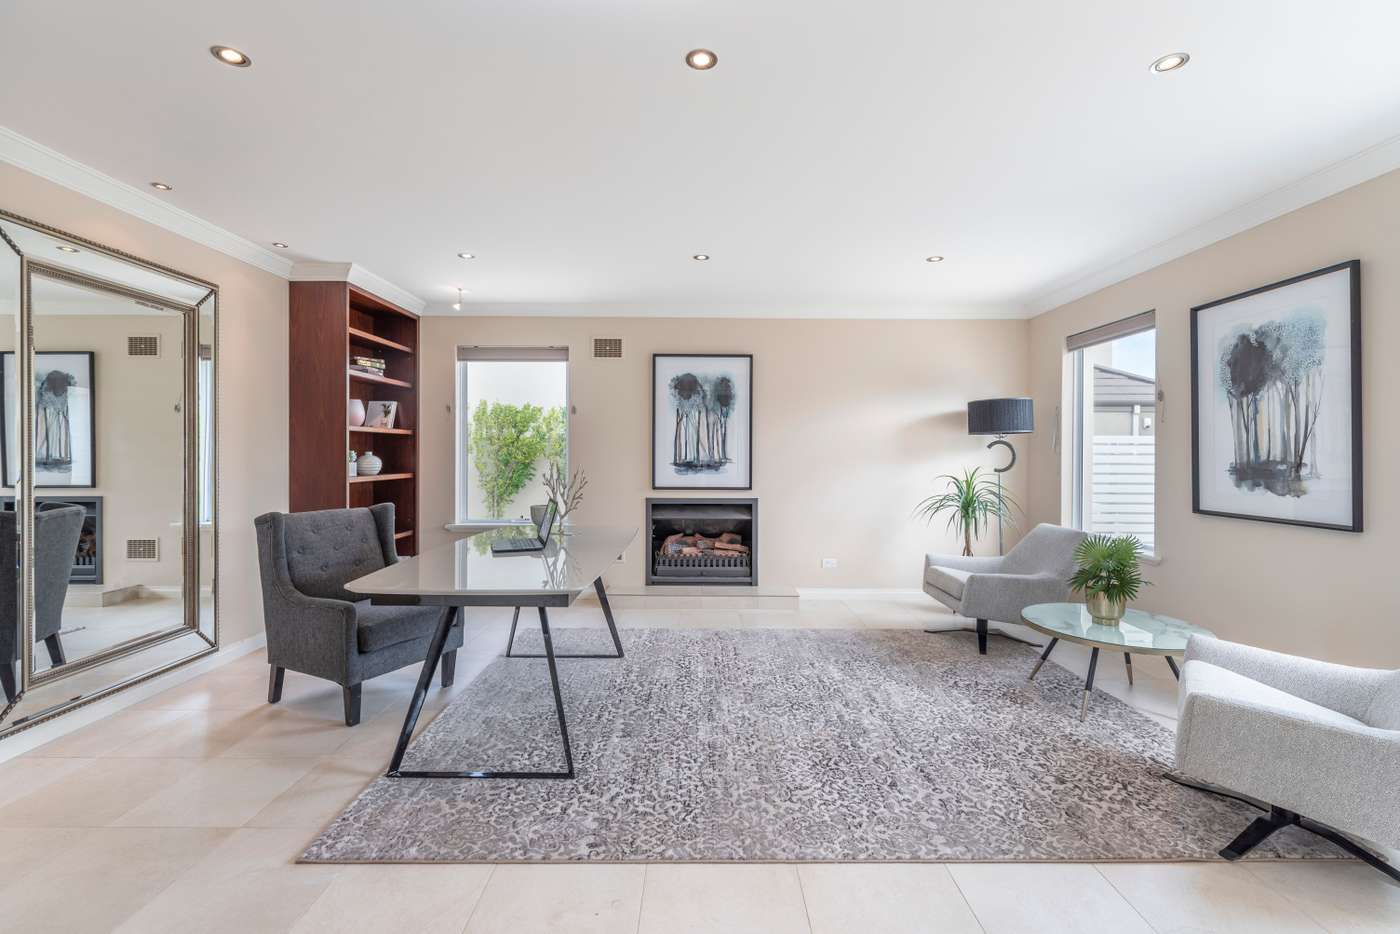 Seventh view of Homely house listing, 15 Canarias Way, Hillarys WA 6025